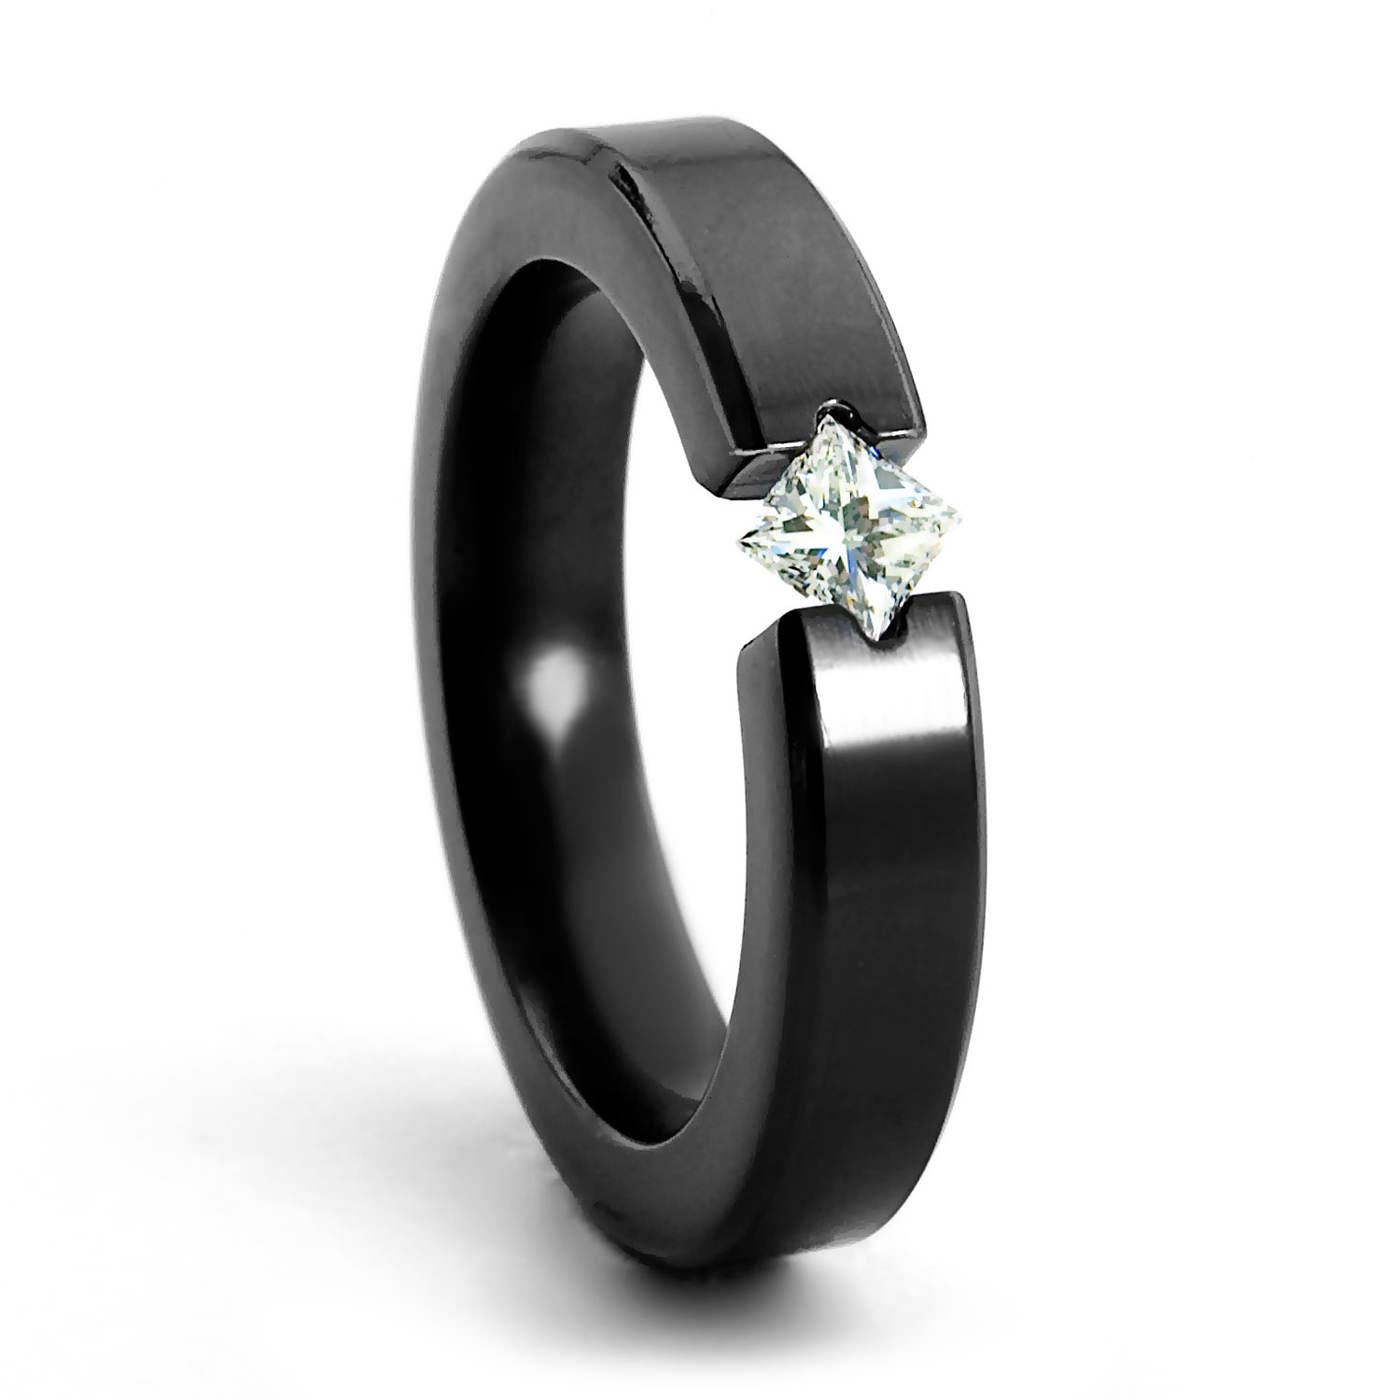 bands women images banded rings with wedding band ring black steel sparkle search stainless